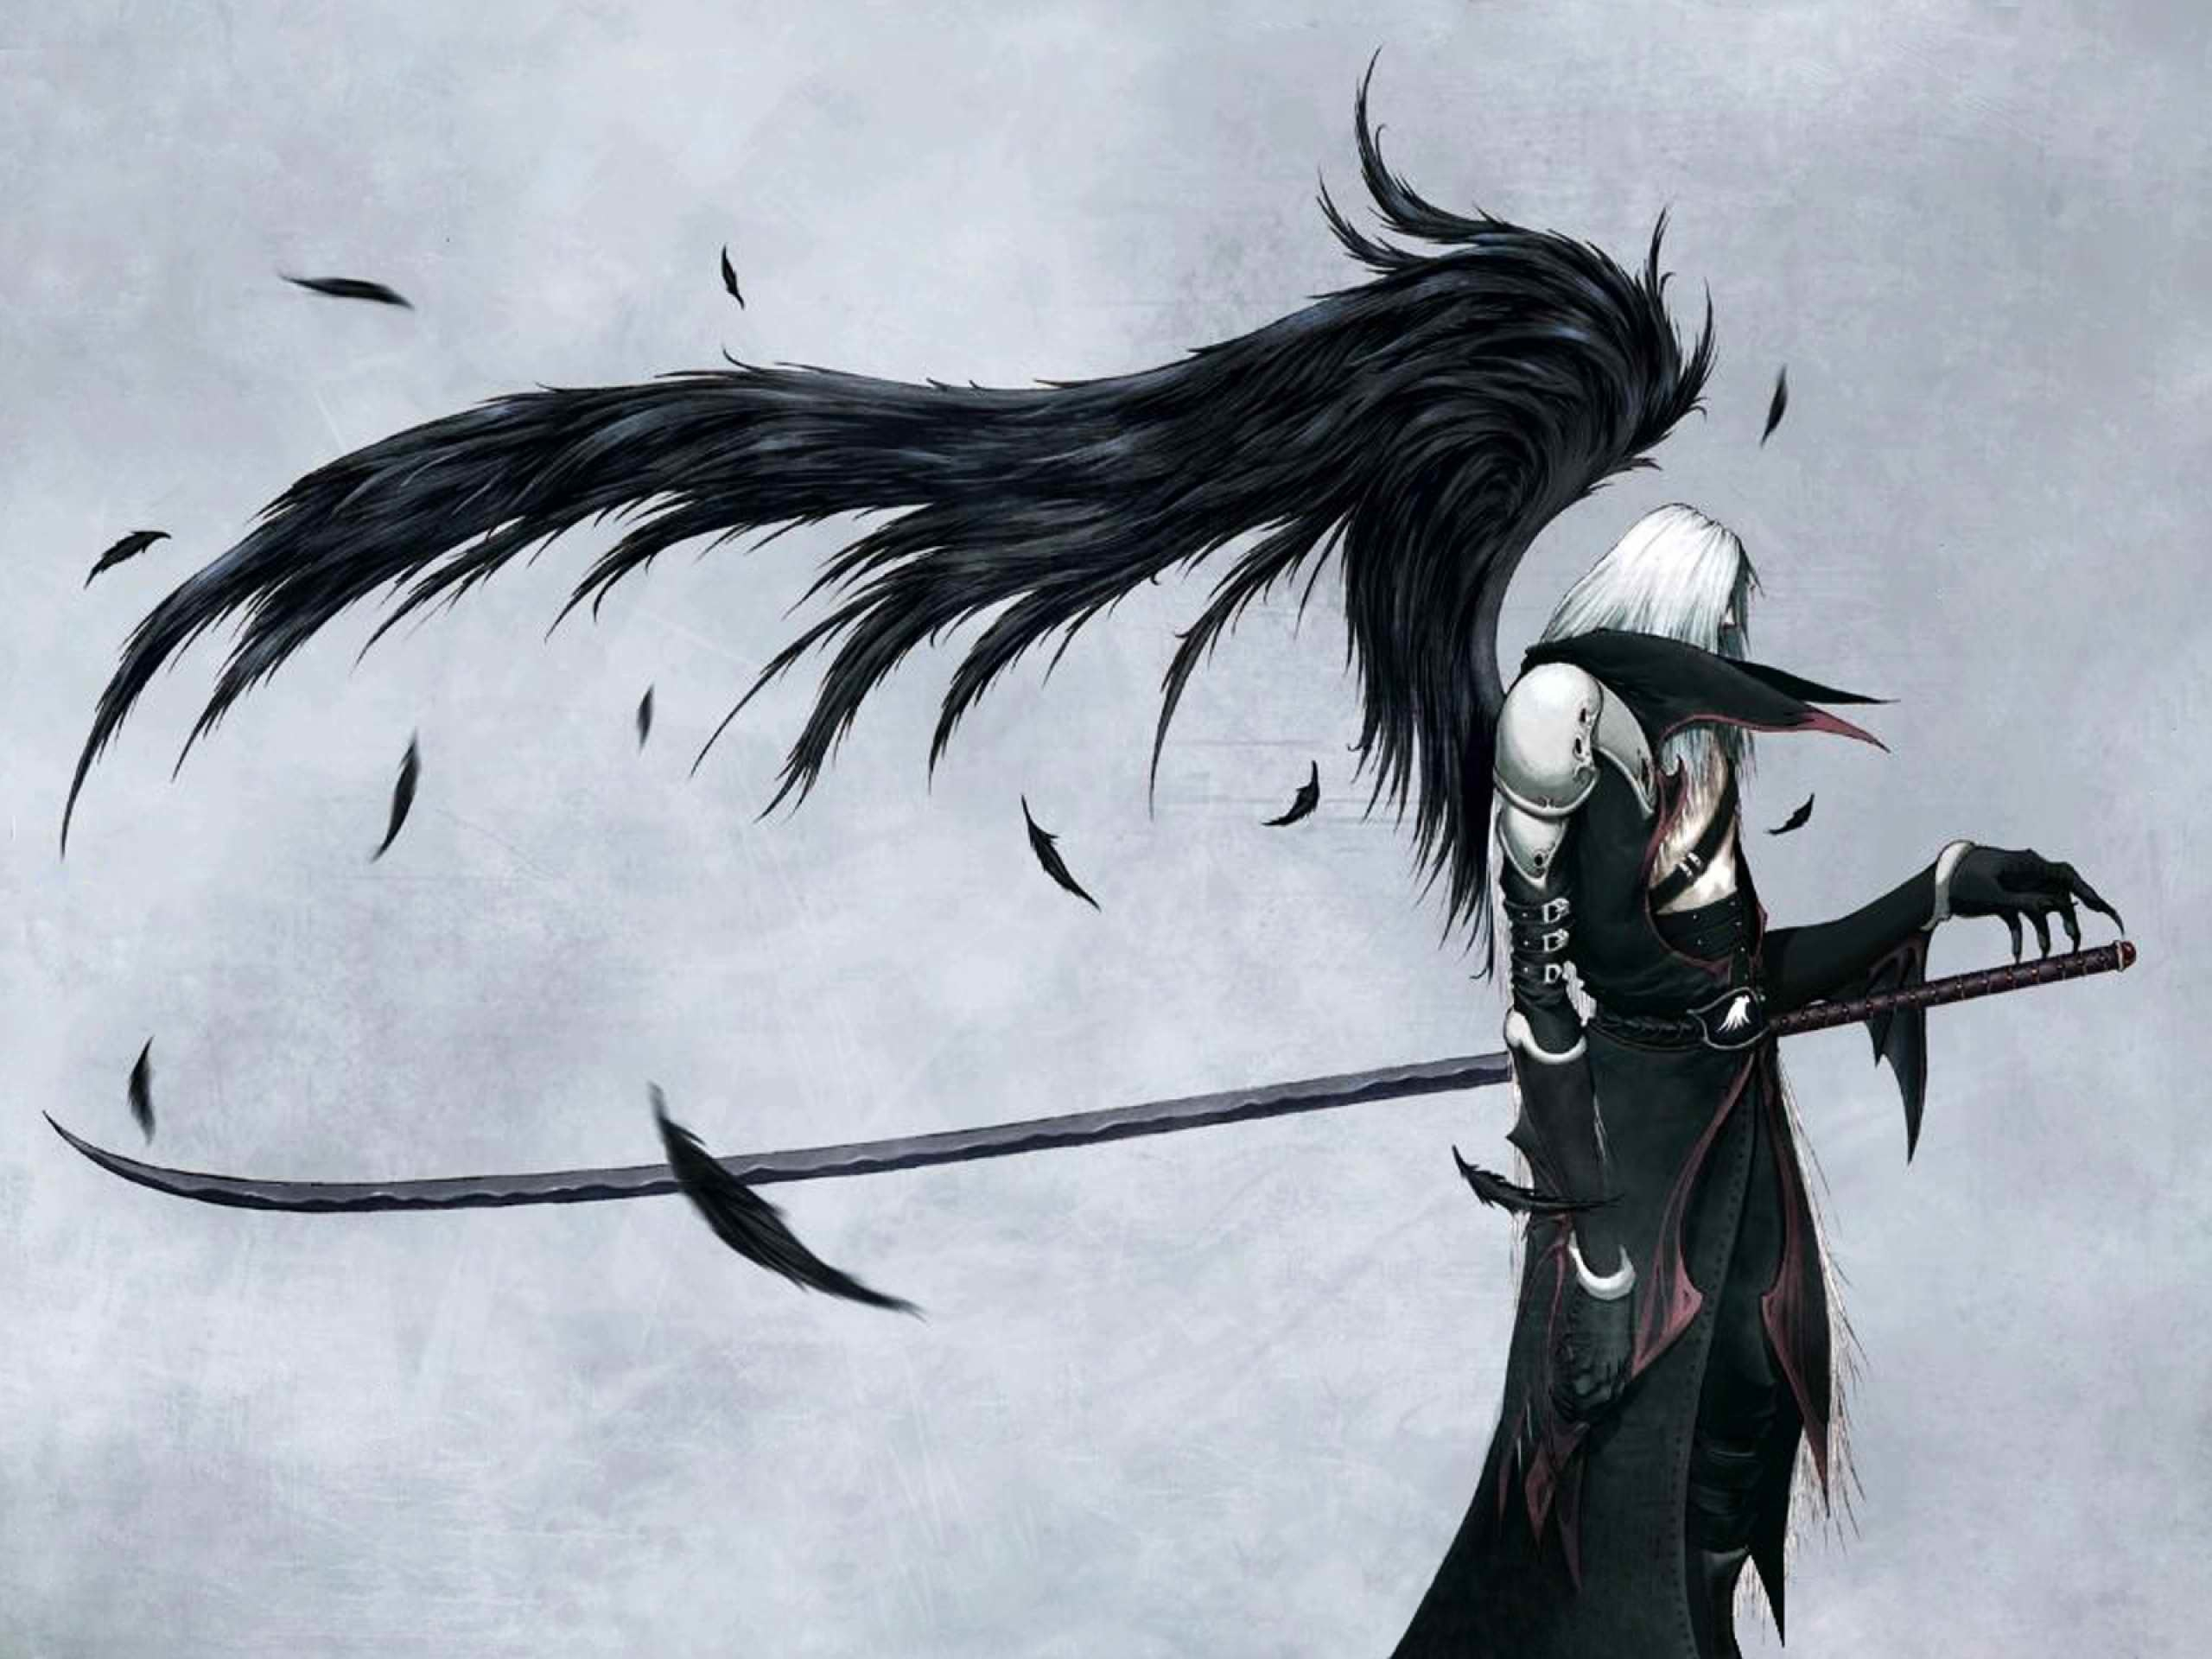 2560x1920 final fantasy 7 sephiroth | HD Wallpapers